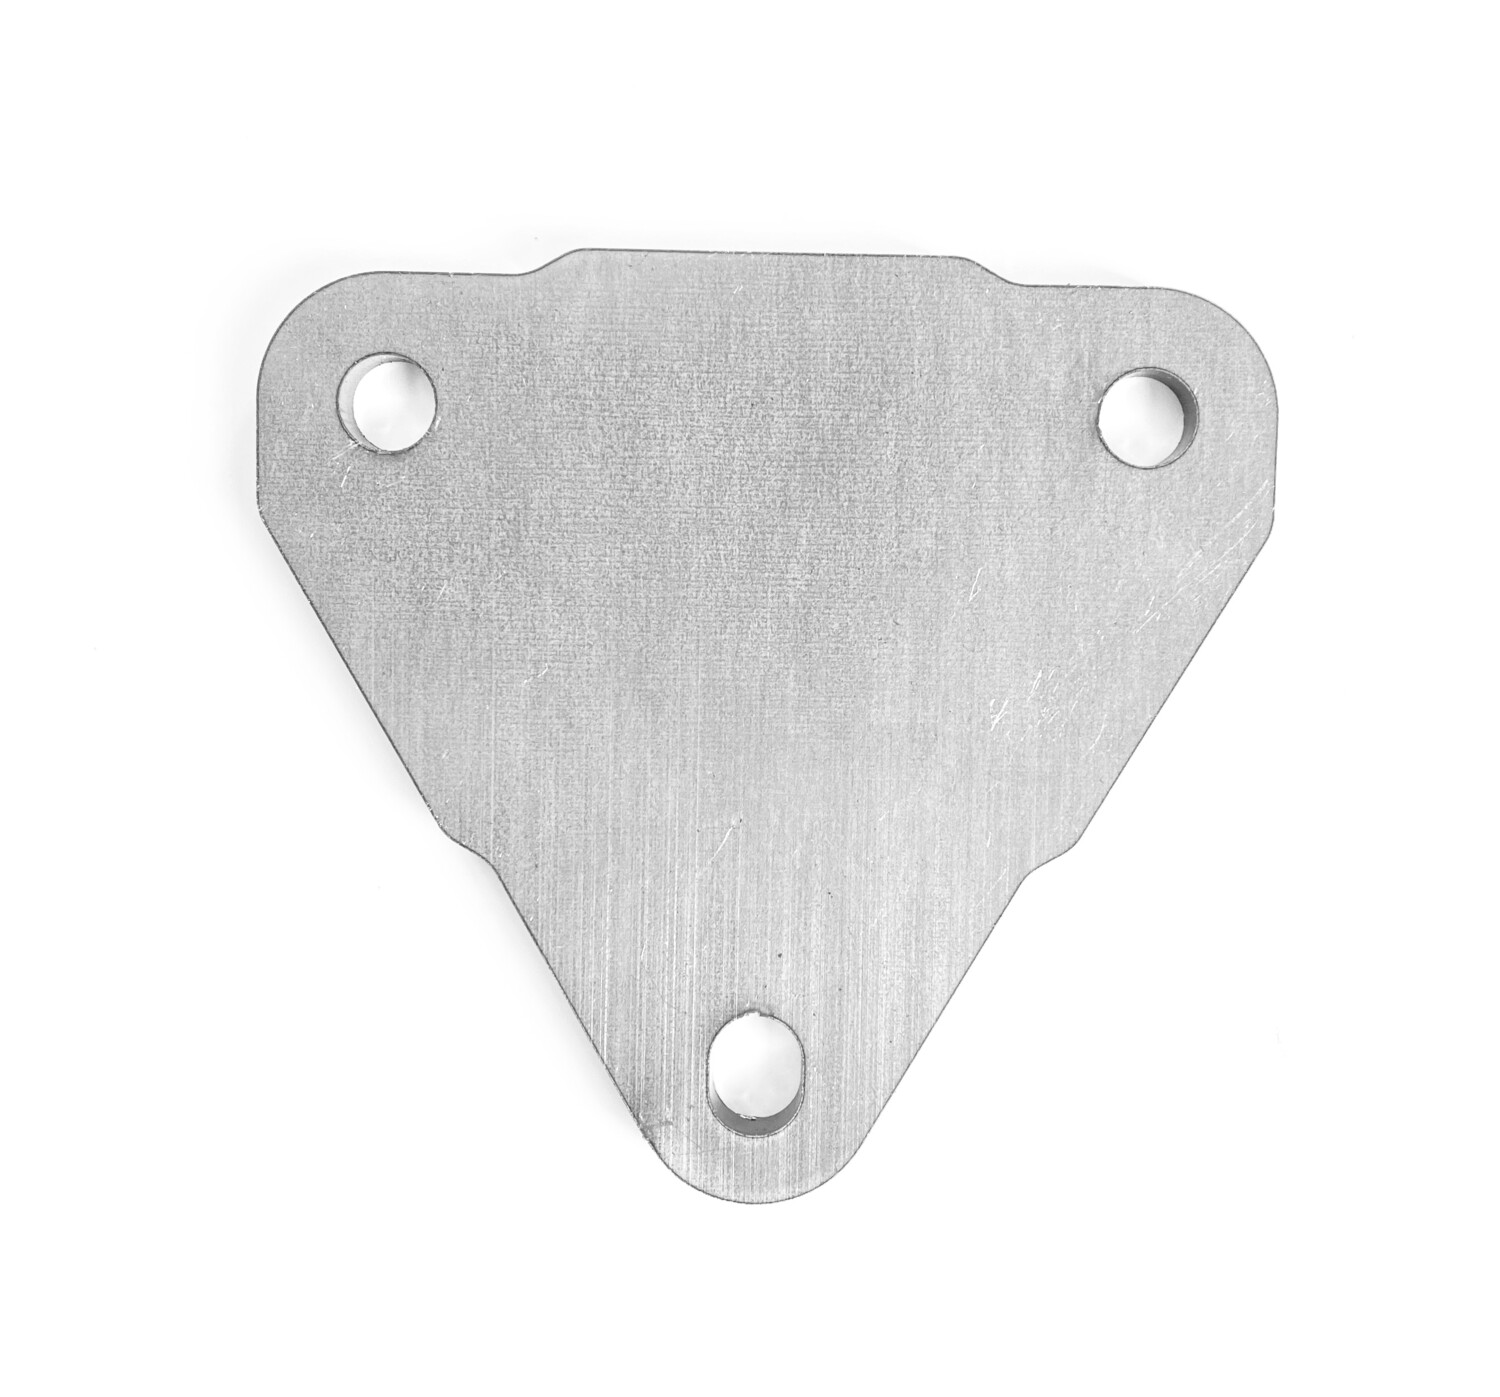 Chev motor mount main plate, for 215900